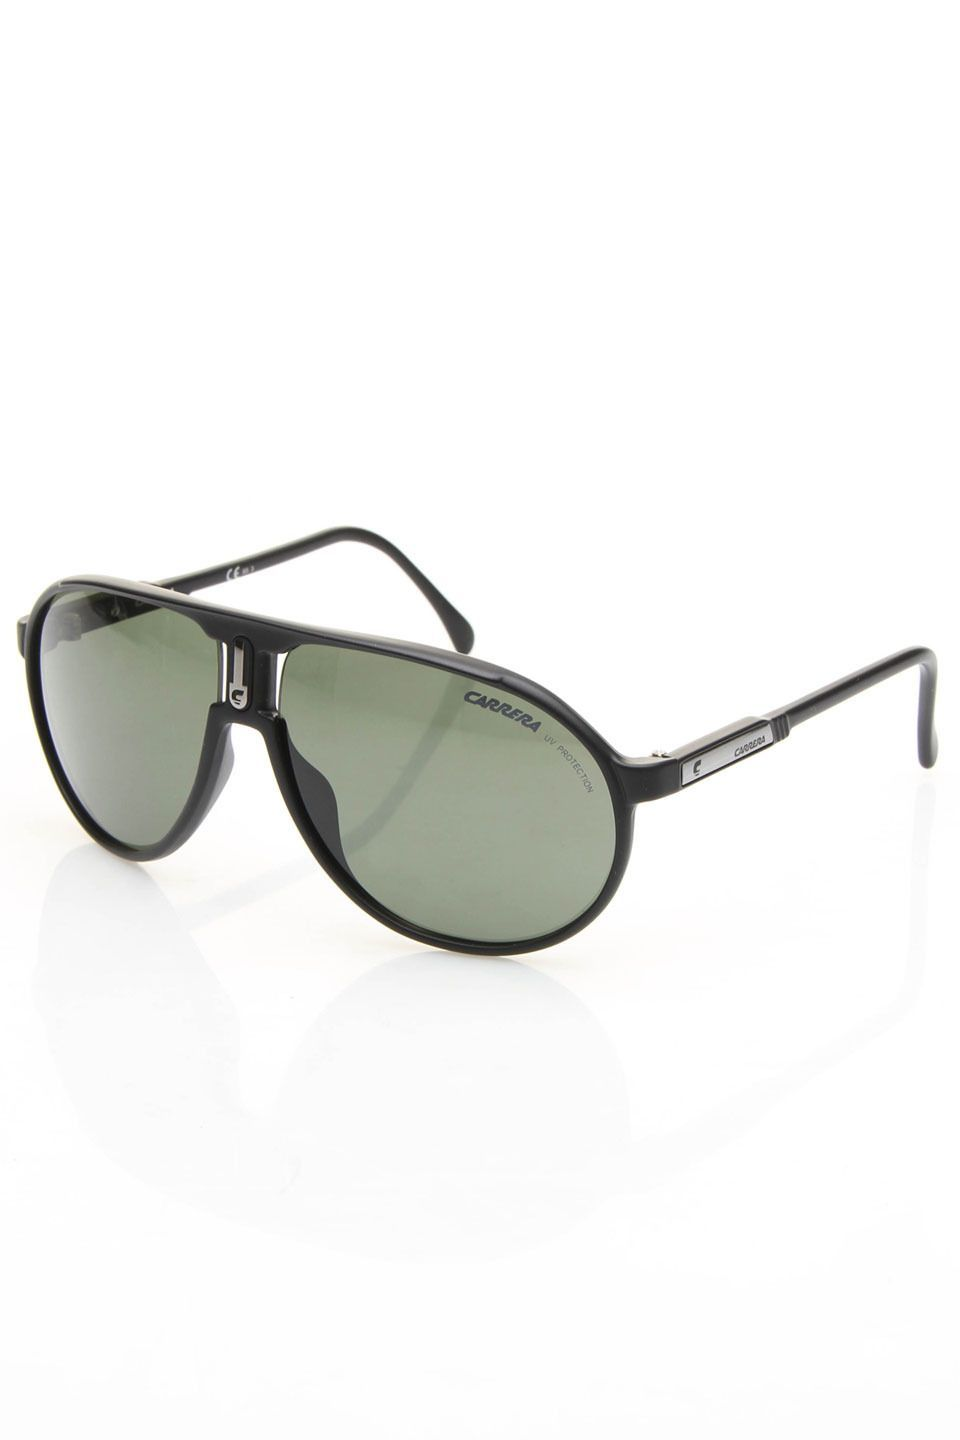 8db0dff7aab Pin by Sunglasses Men on Sunglasses For Men